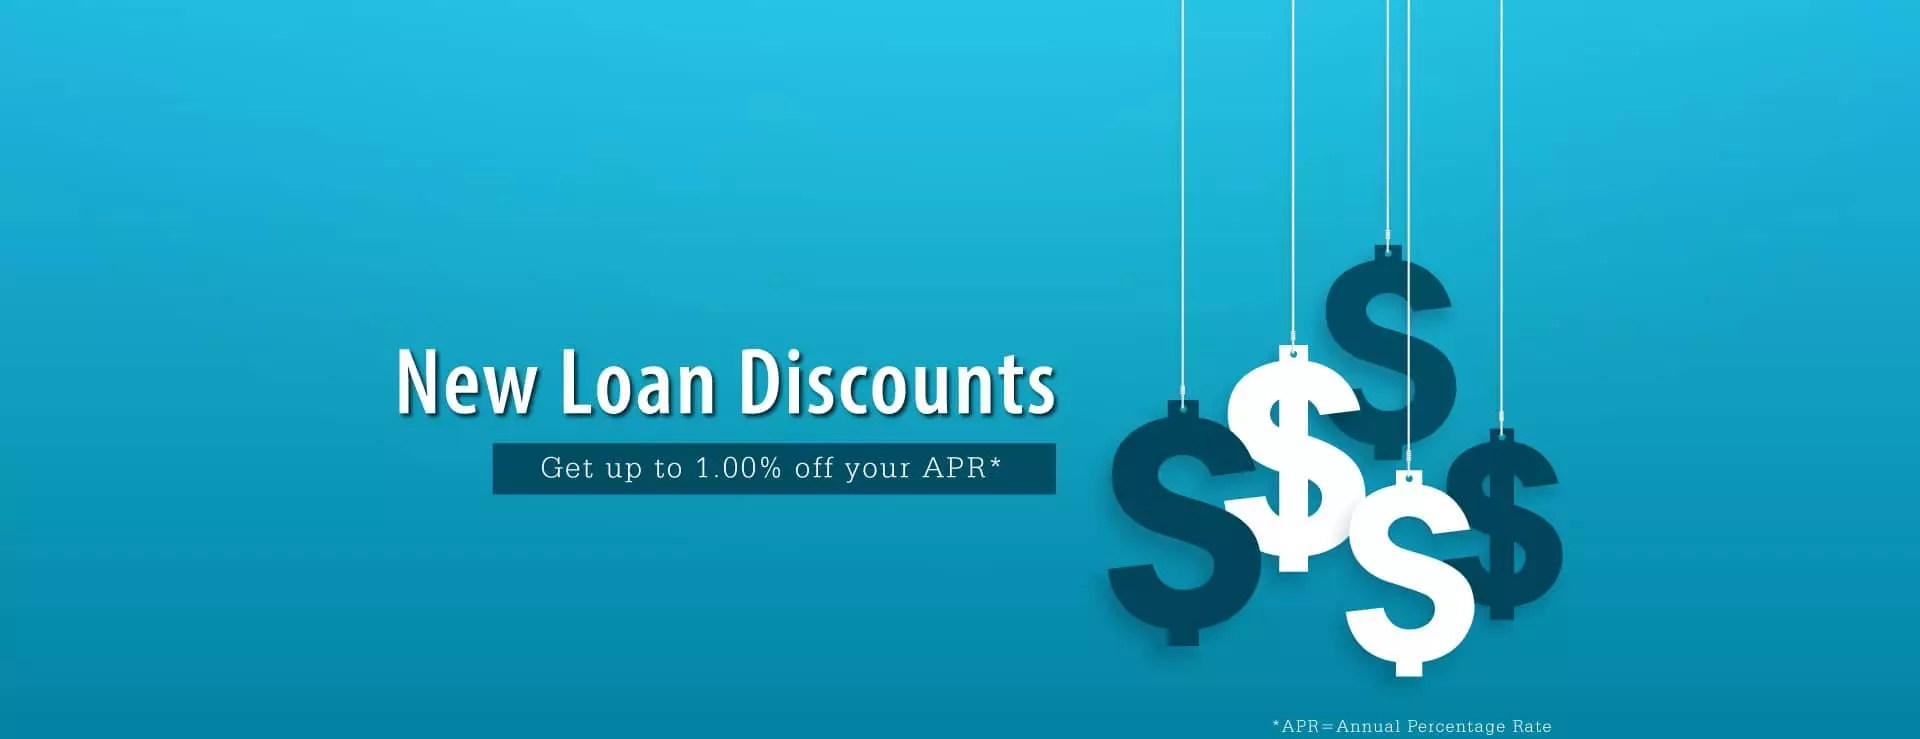 april-loan-discounts-web-min